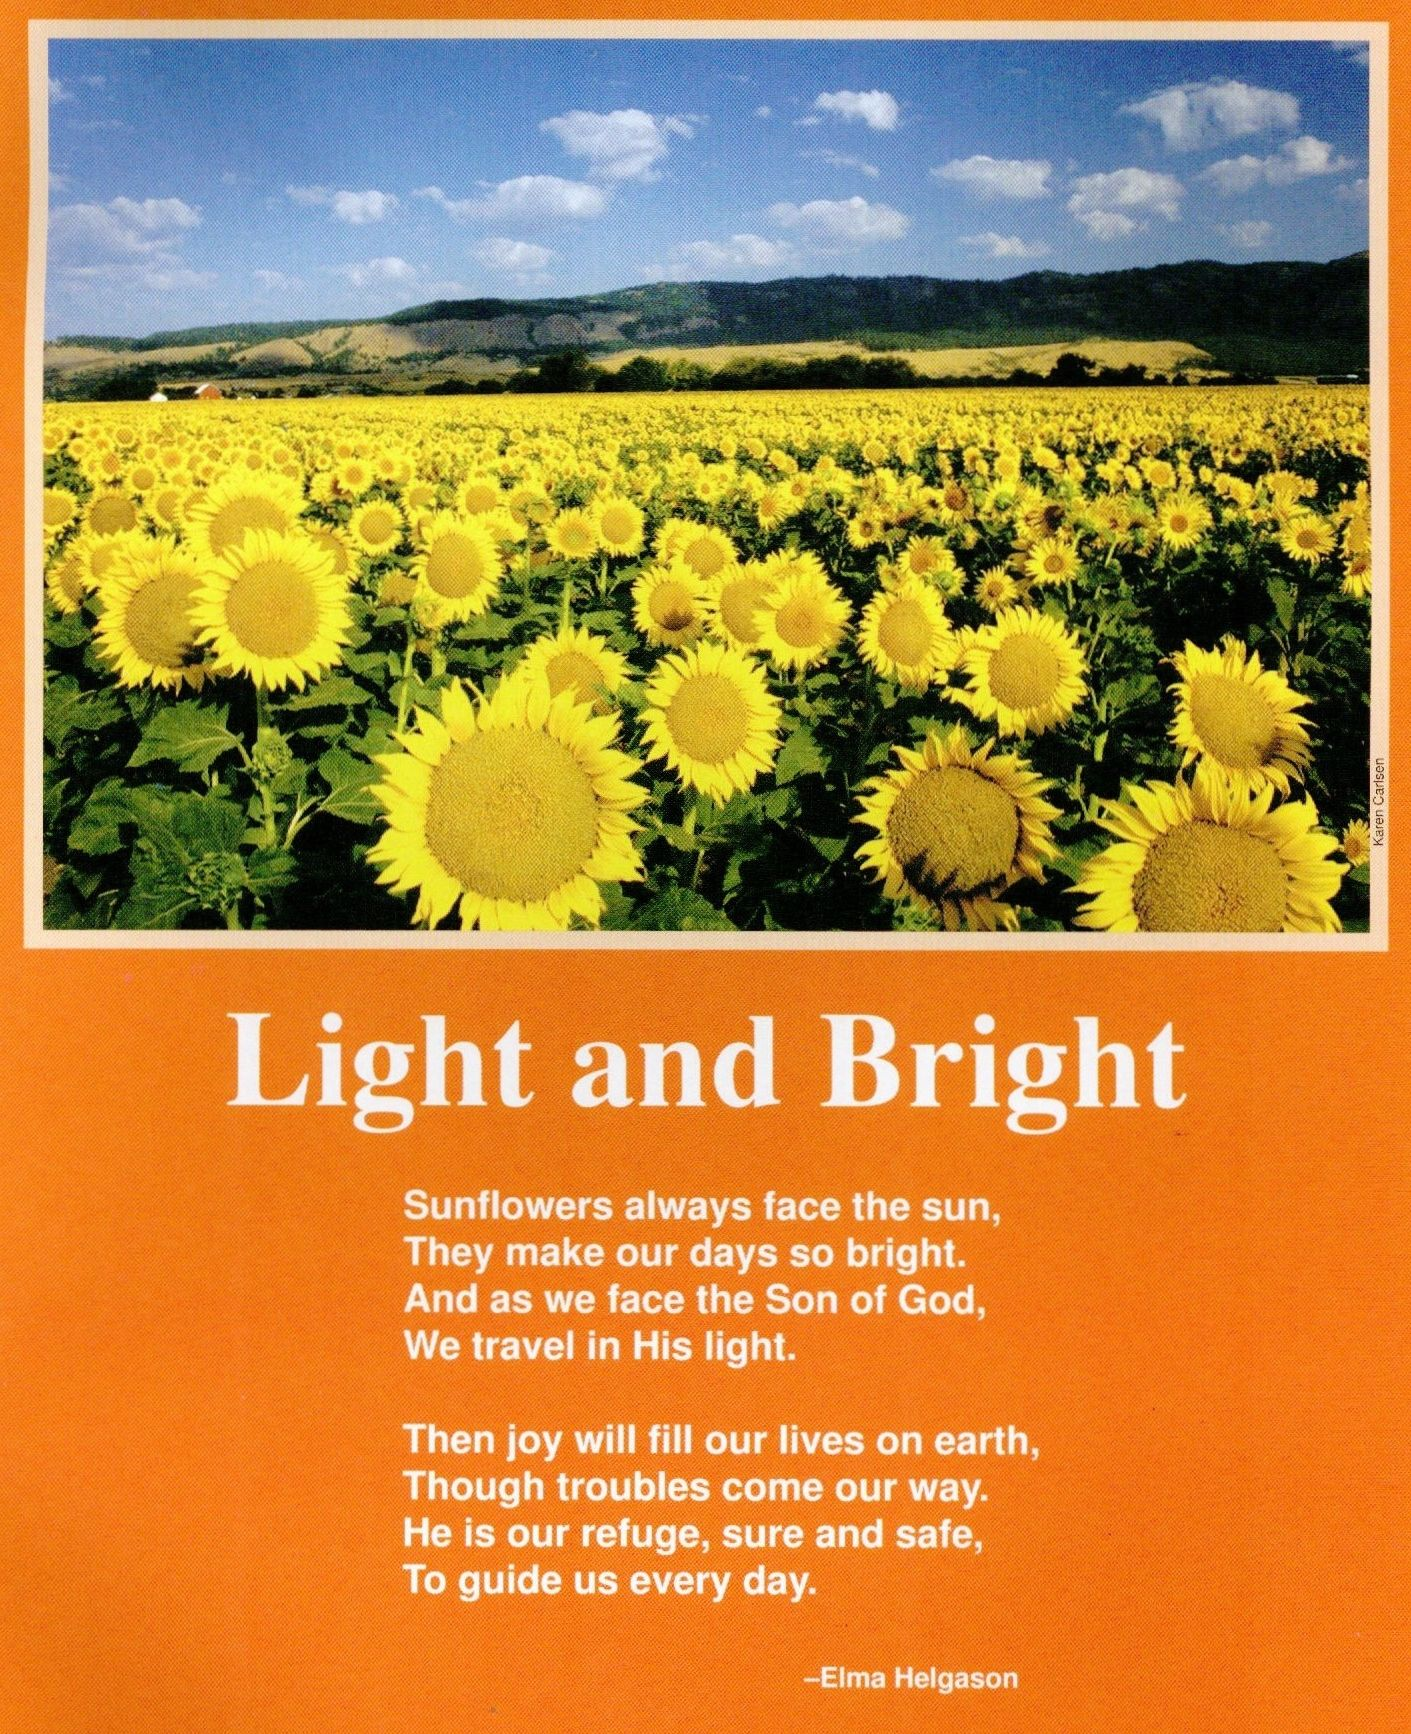 Poem About Sunflowers Facing The Sun By Elma Helgason Ci Nature